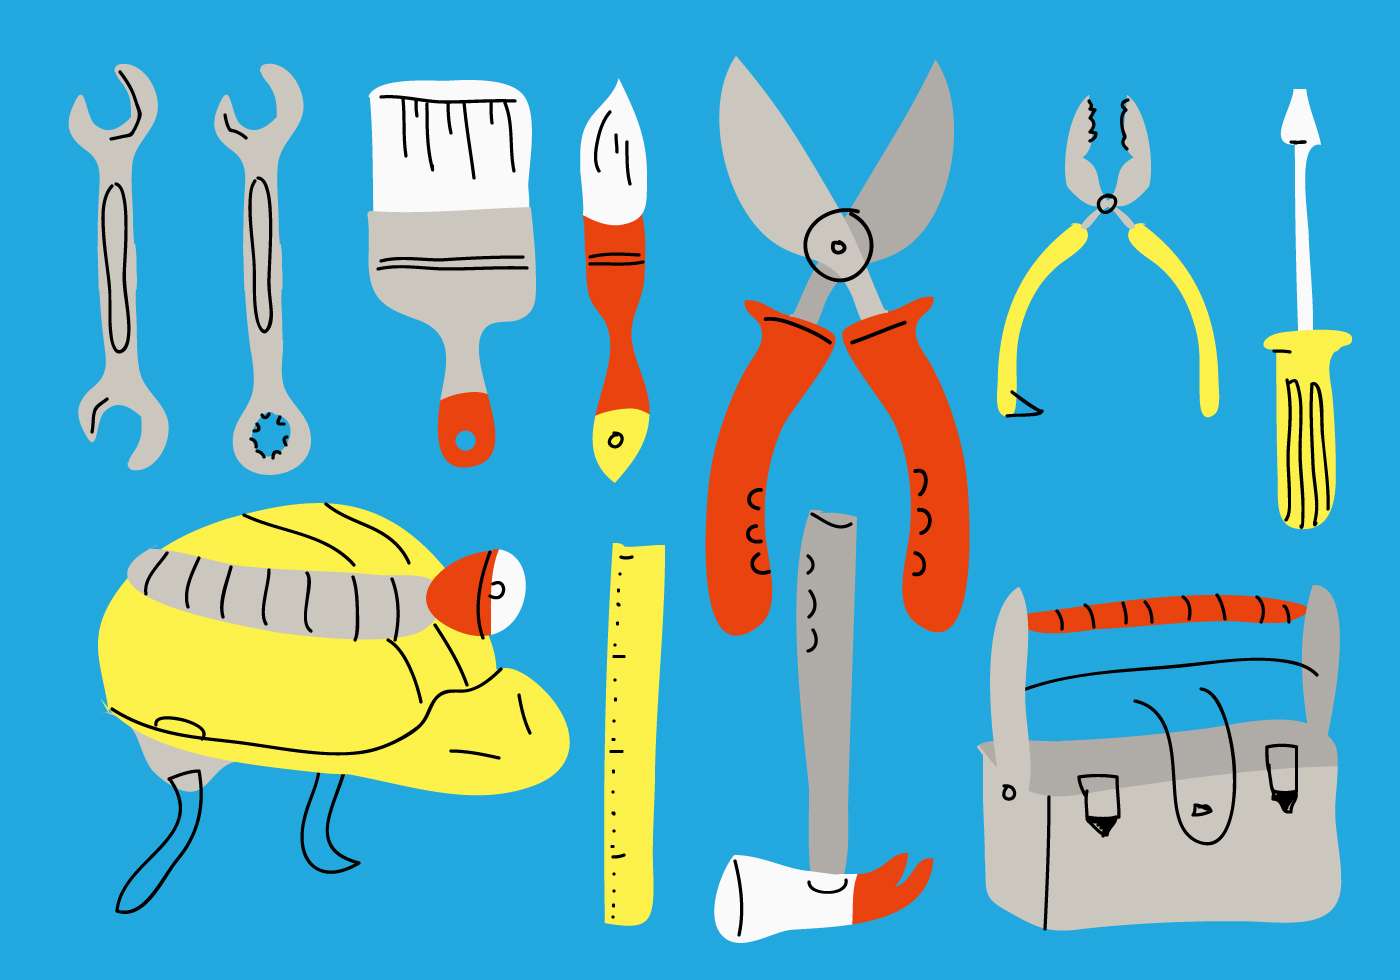 Bricolage vector illustration download free vector art - Clipart bricolage ...